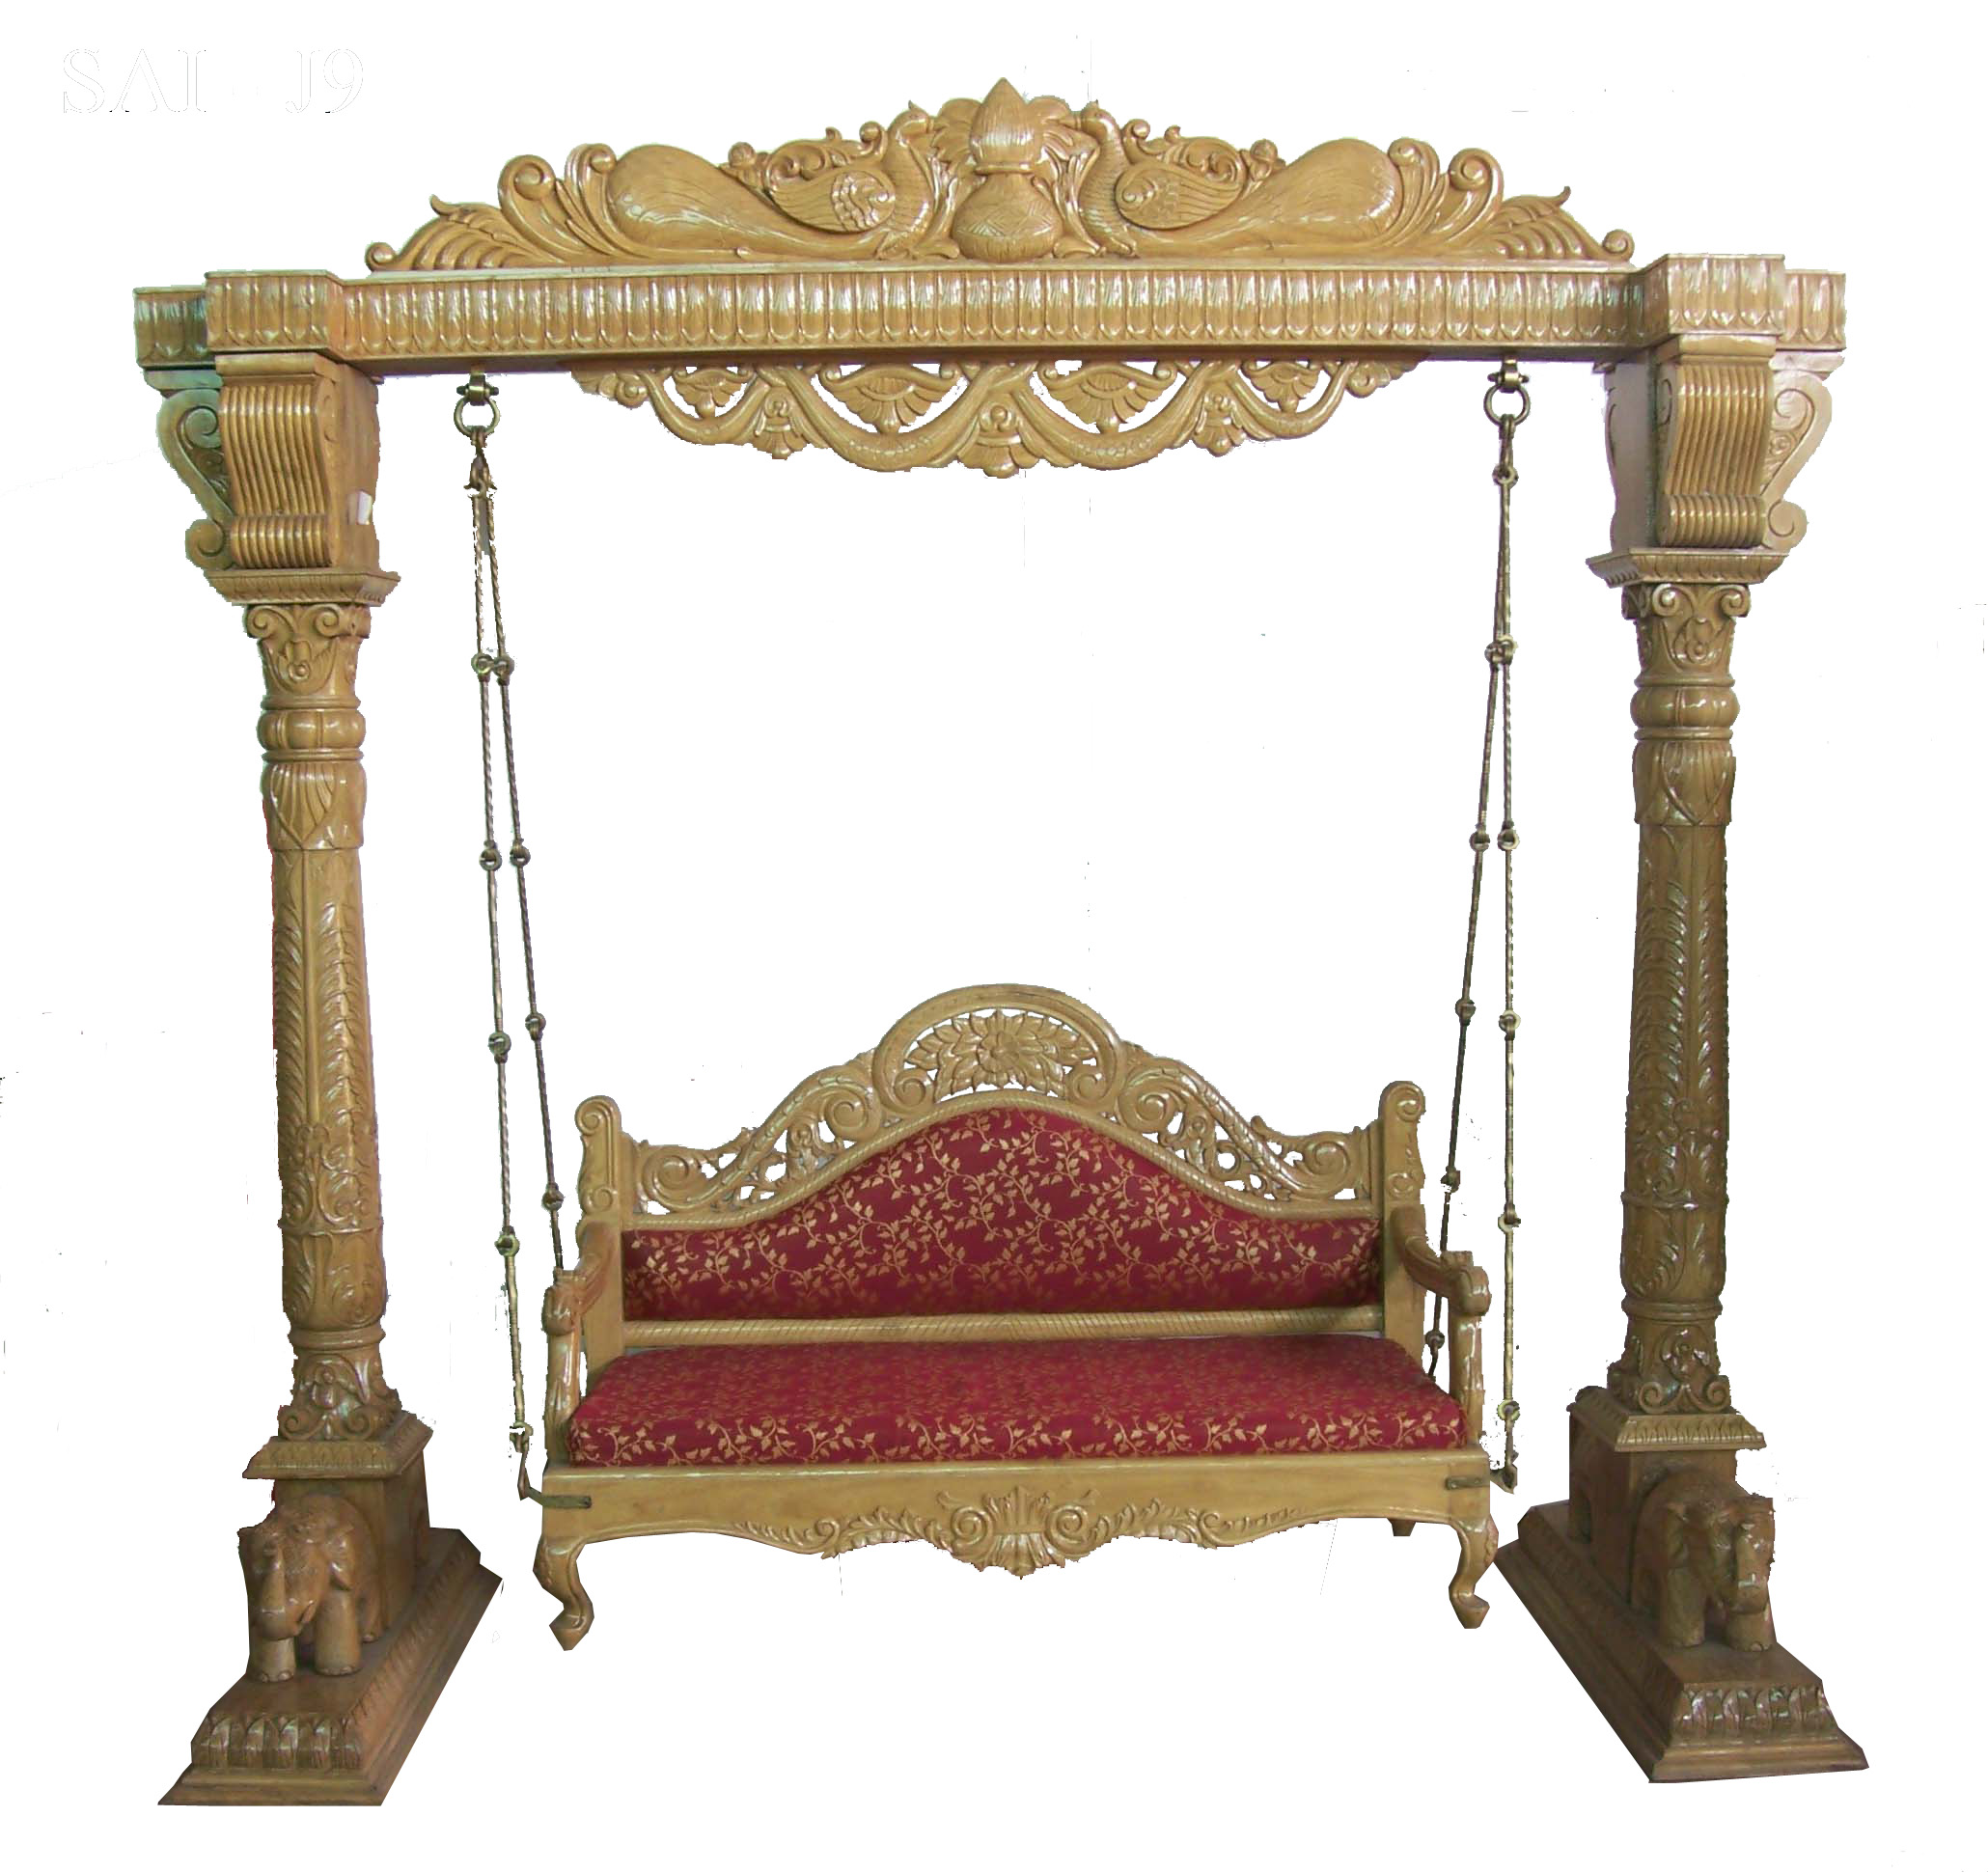 Buy Indian Swing For Home And Garden From Daves Export